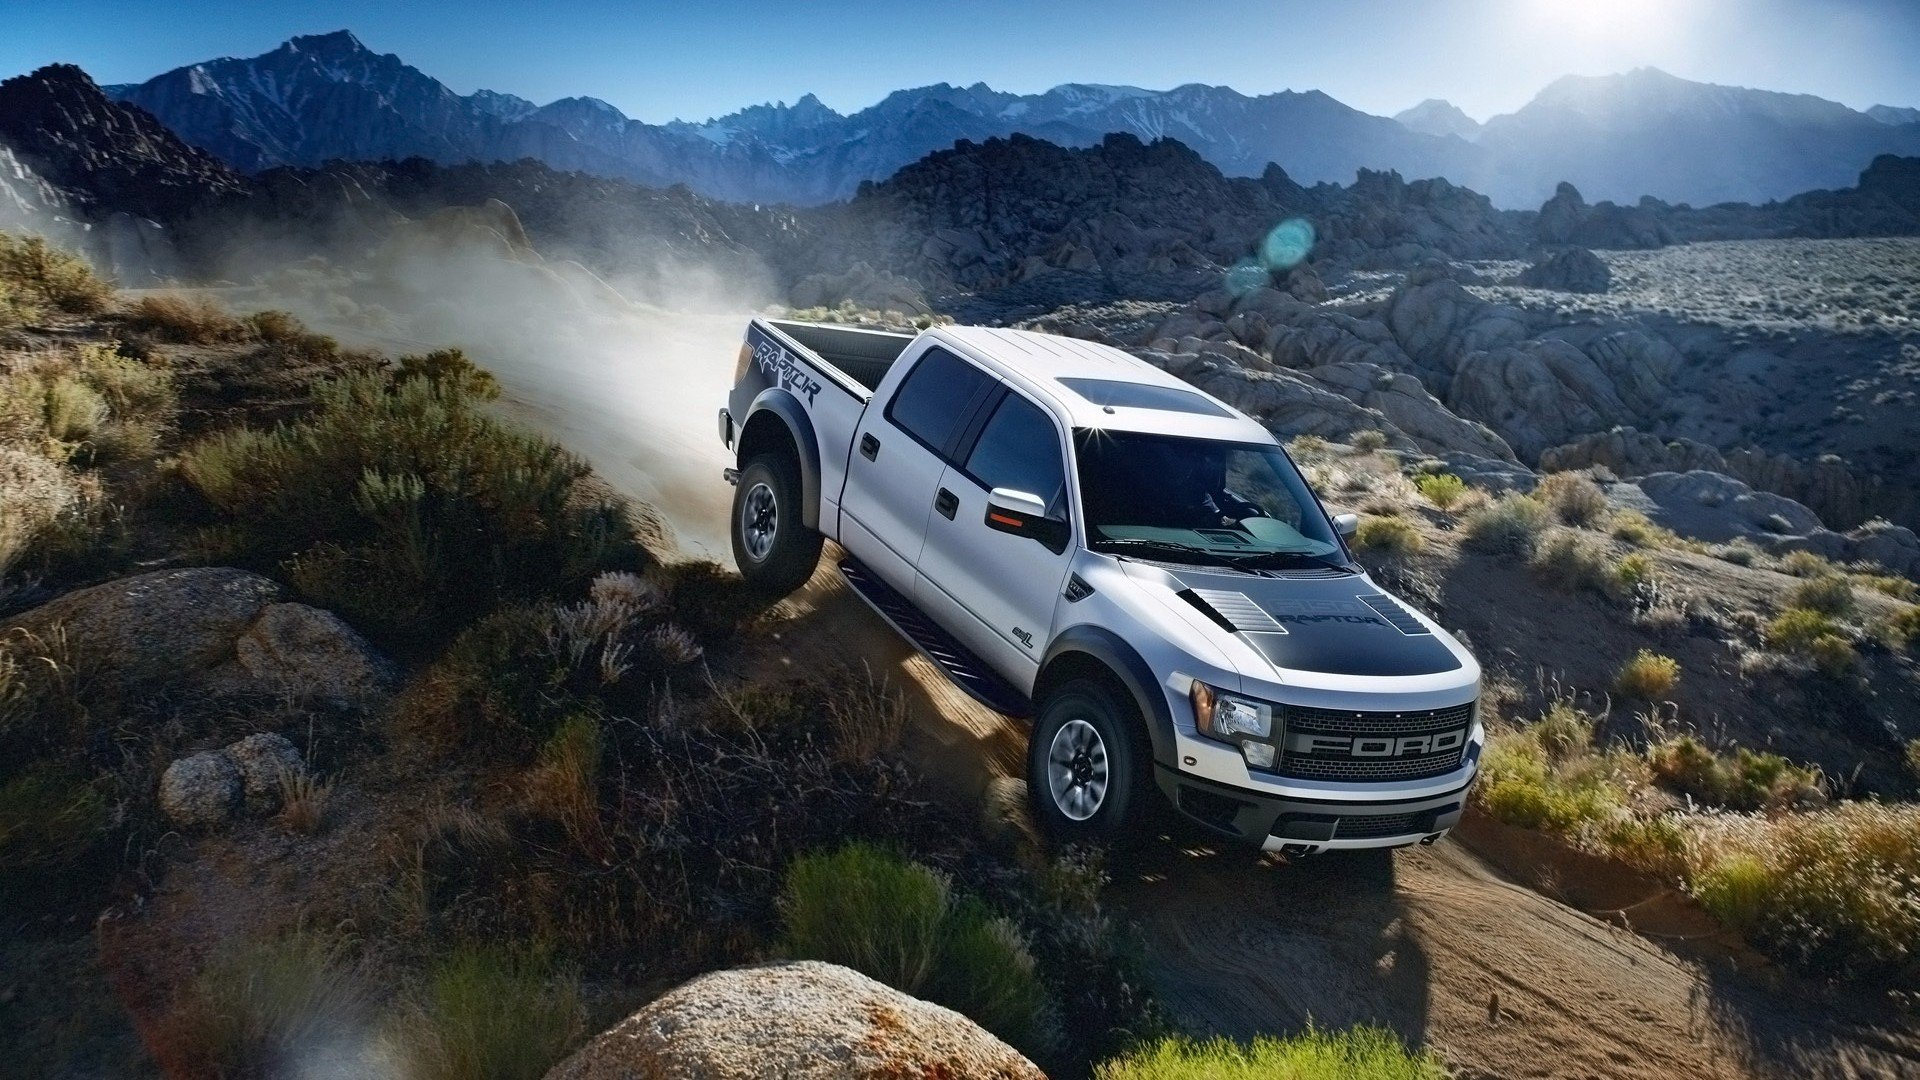 авто 2011 ford f150 svt raptor